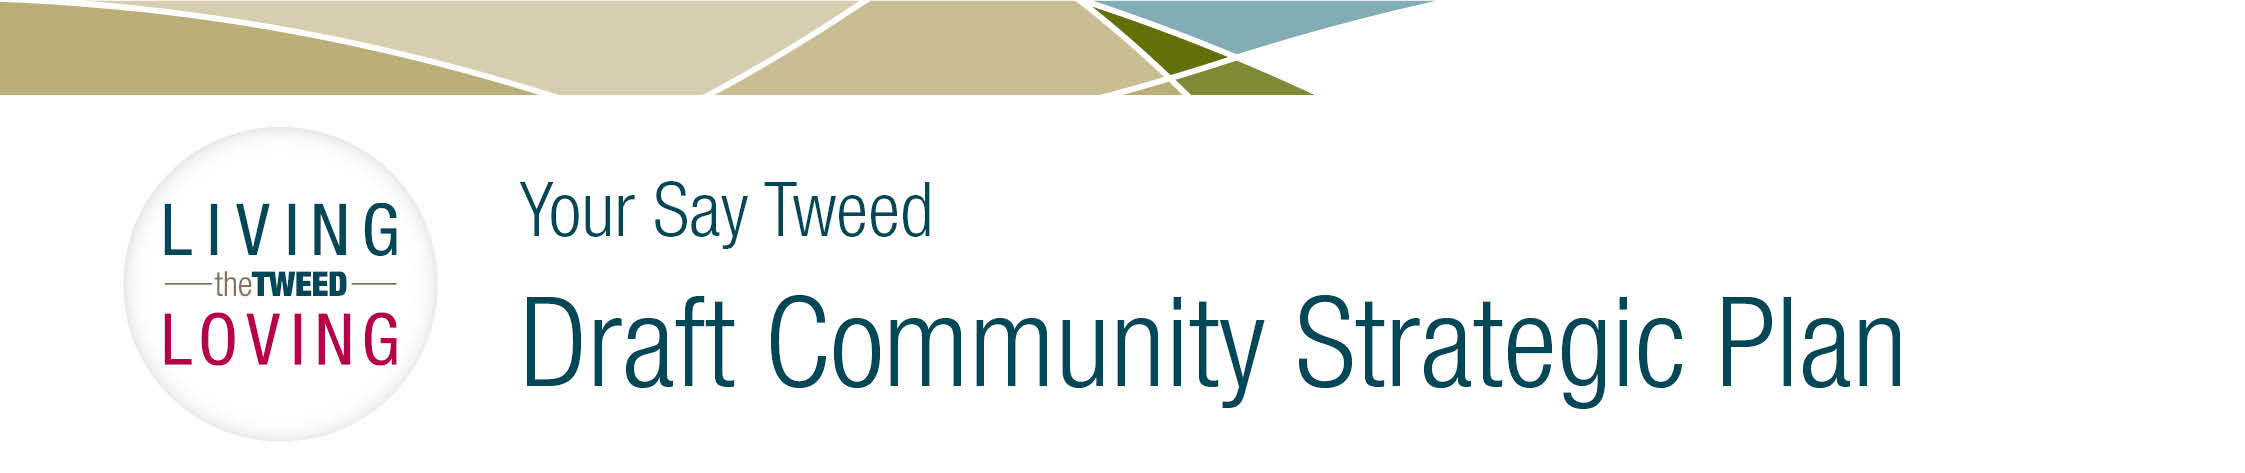 Have your say on the draft community strategic plan